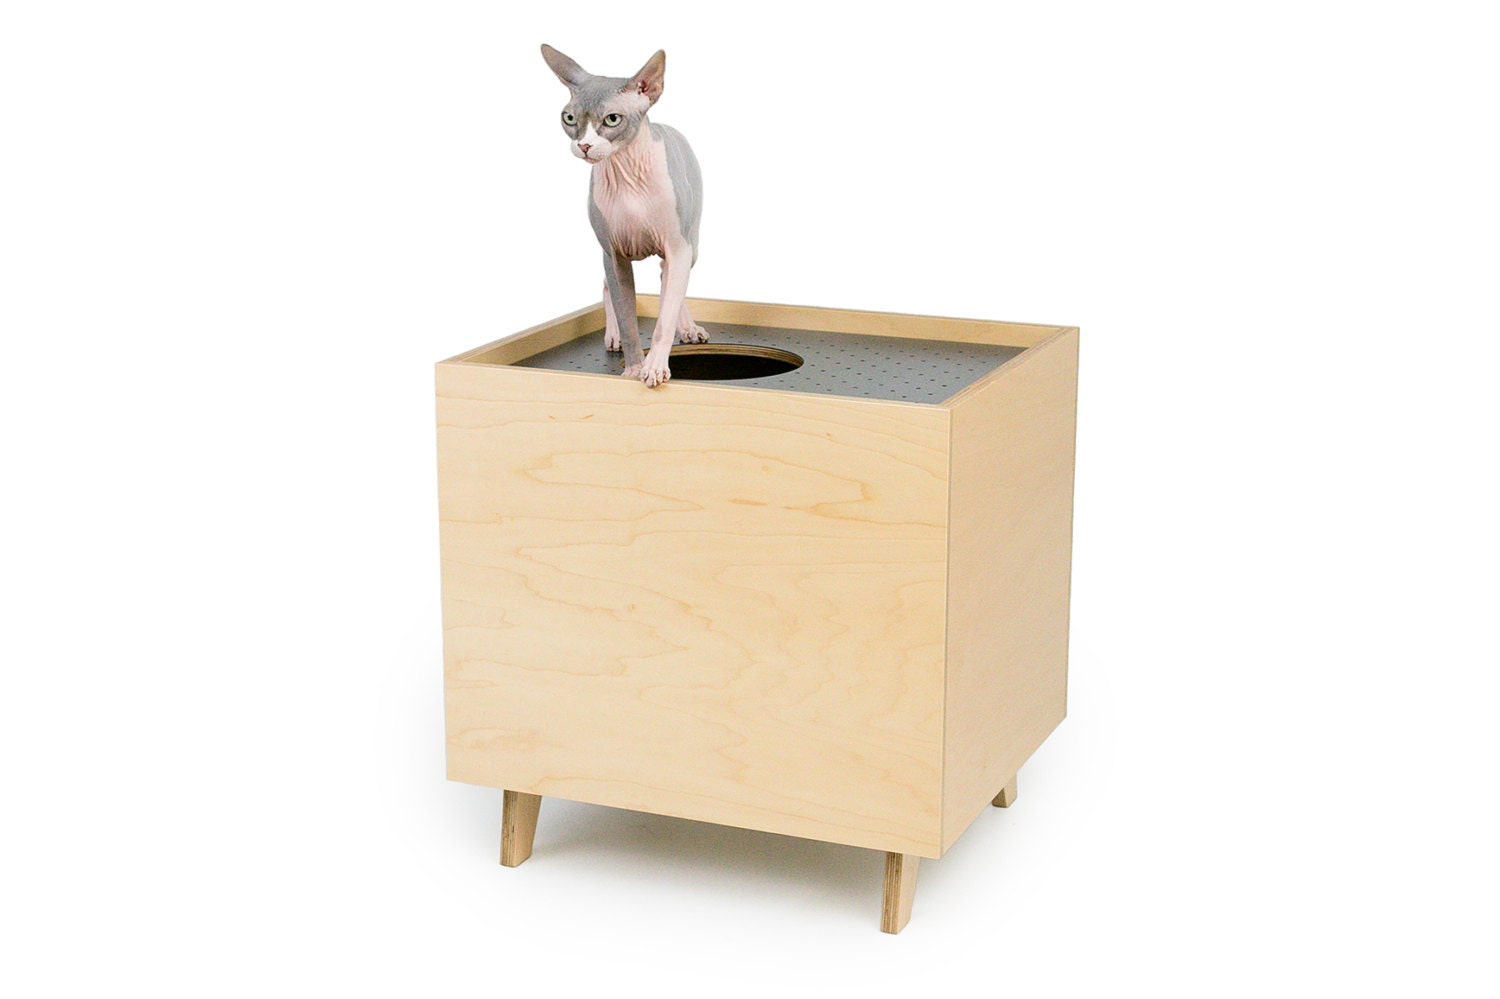 Mid century modern cat litter box furniture large cat litter - Modern kitty litter box ...